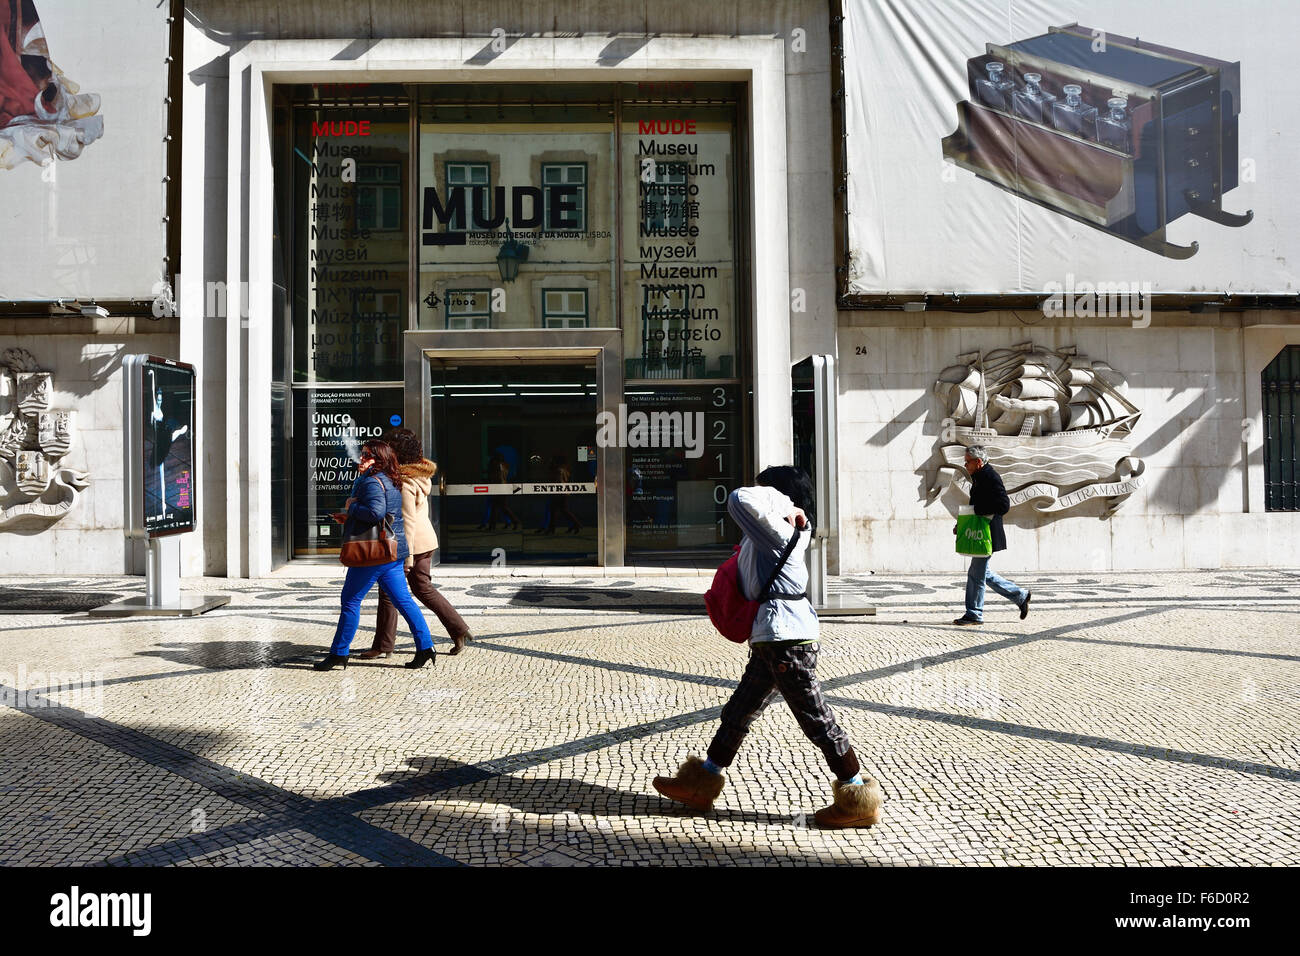 Design Fashion Museum Mude Lisbon High Resolution Stock Photography And Images Alamy